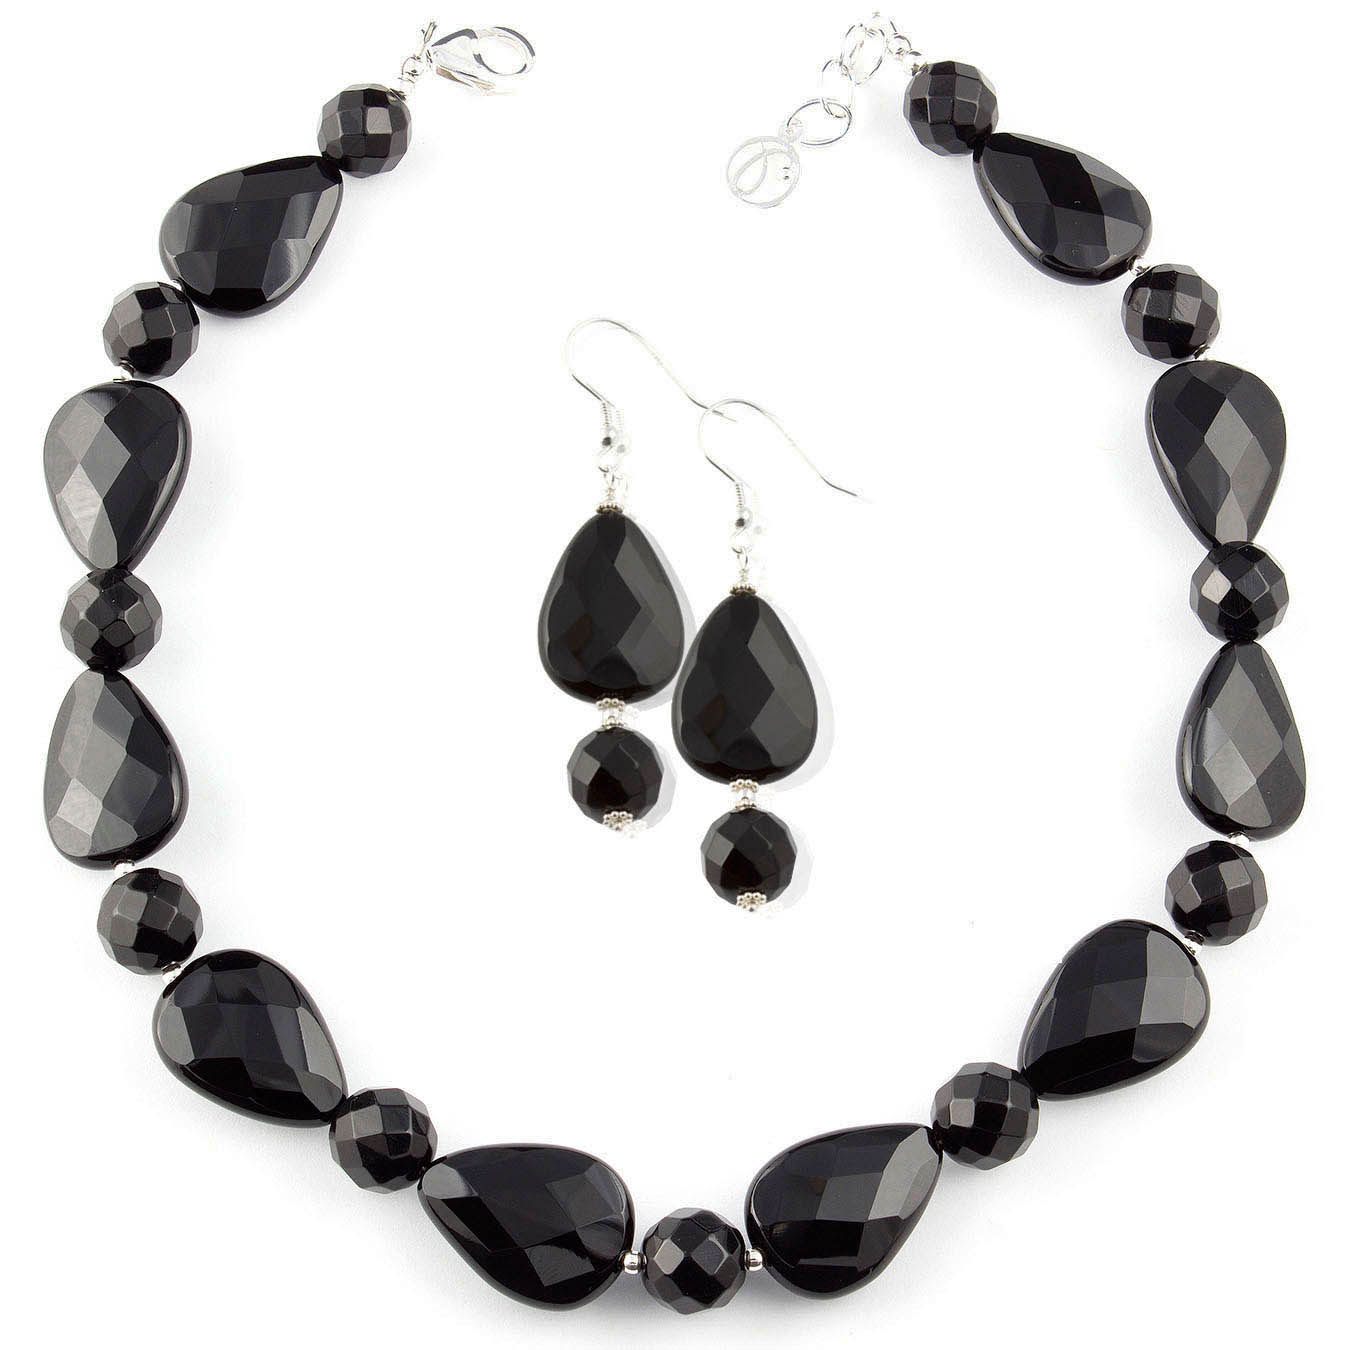 Handcrafted choker style bead jewelry made with faceted black agate